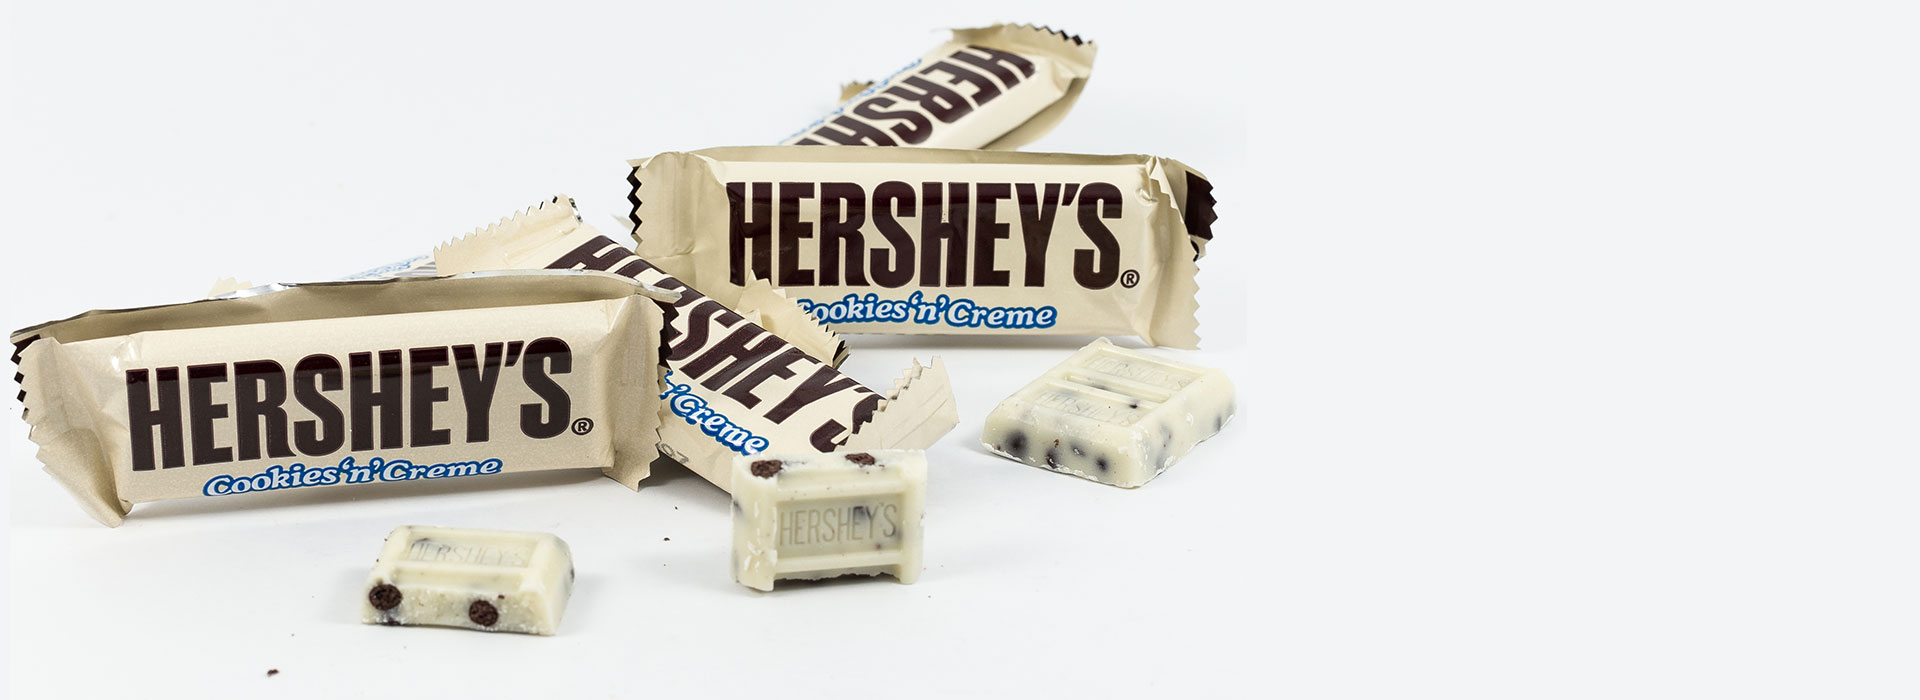 Hershey's Cookies & Cream Bar For Sale